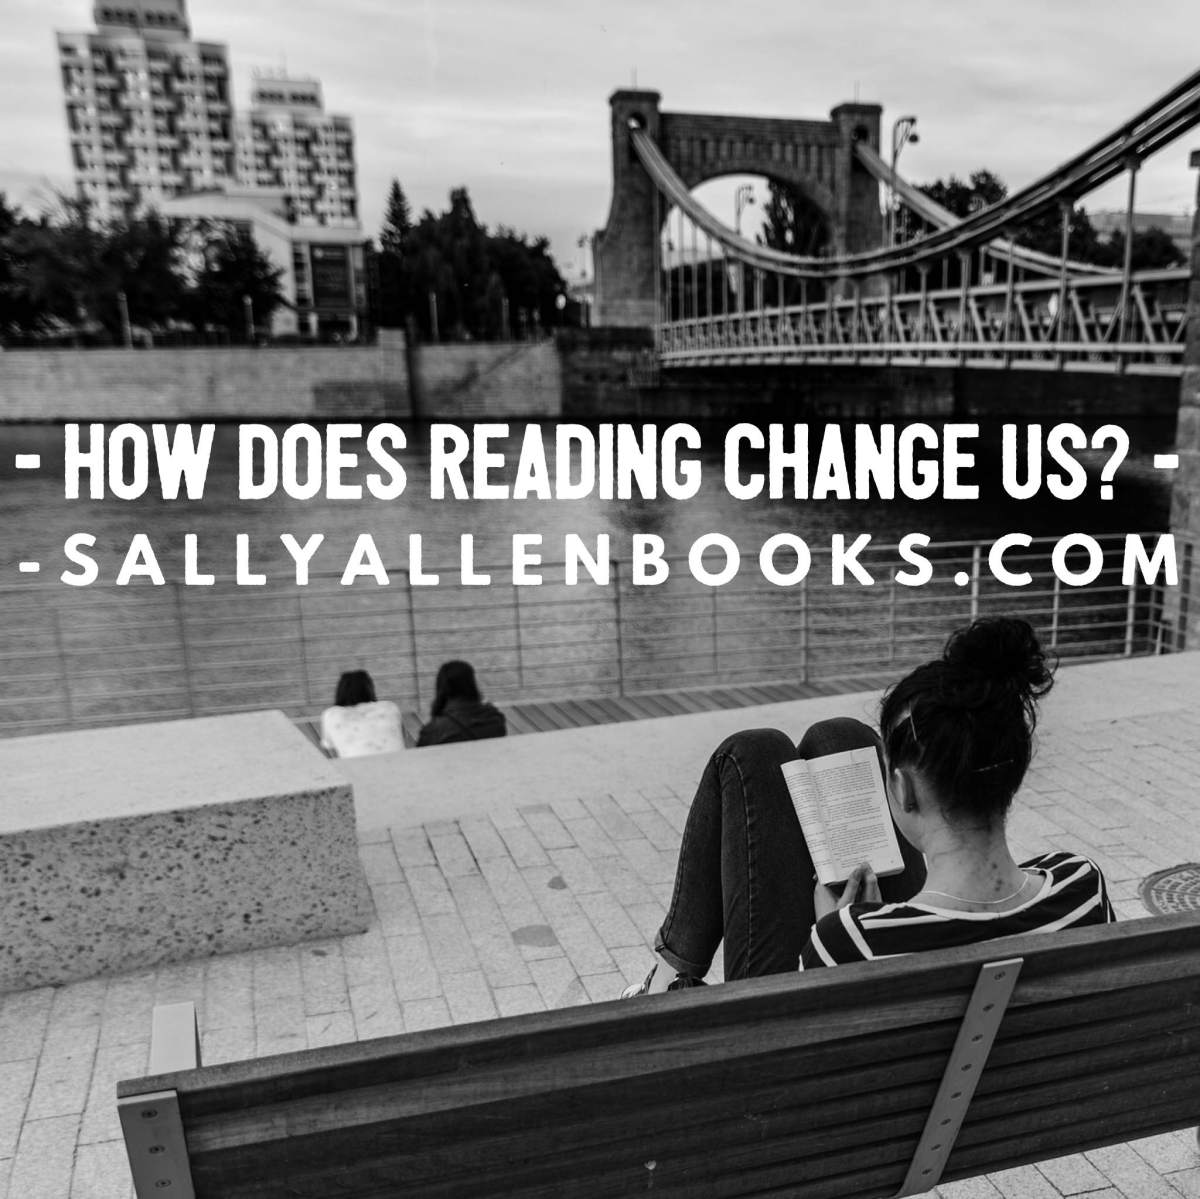 How does reading change us?